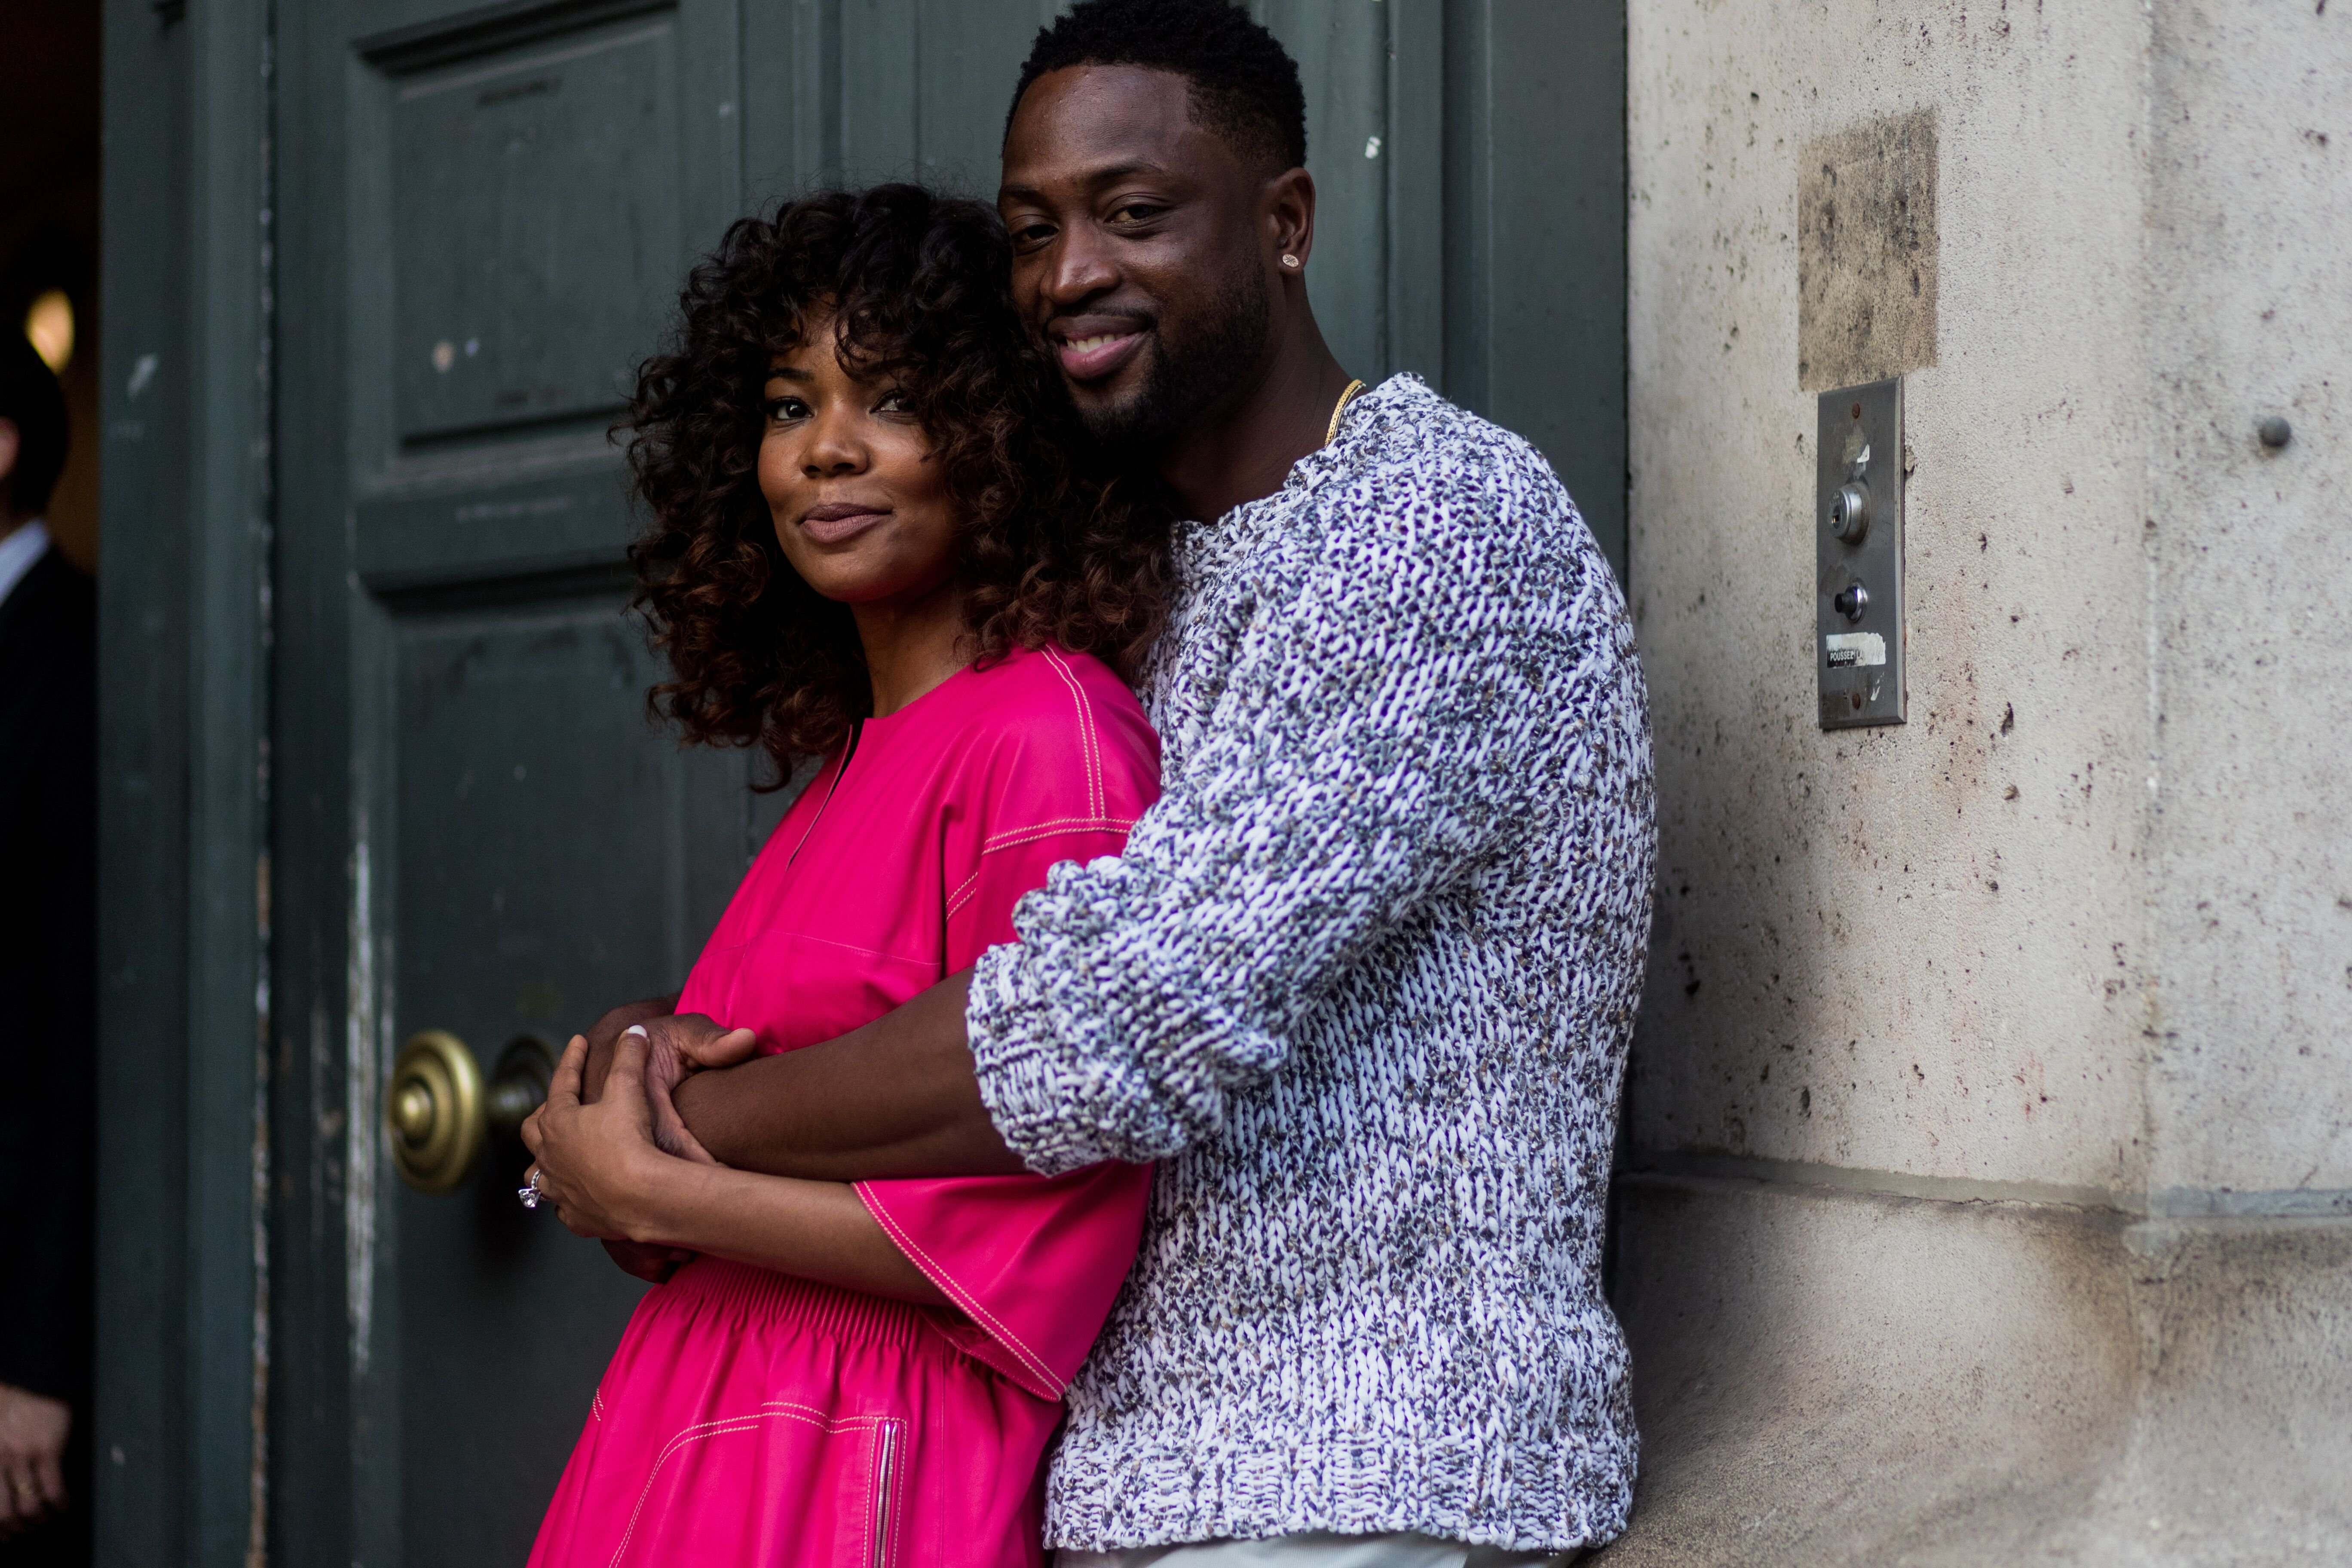 Gabrielle Union & Dwyane Wade during Paris Fashion Week in 2017 in France | Source: Getty Images